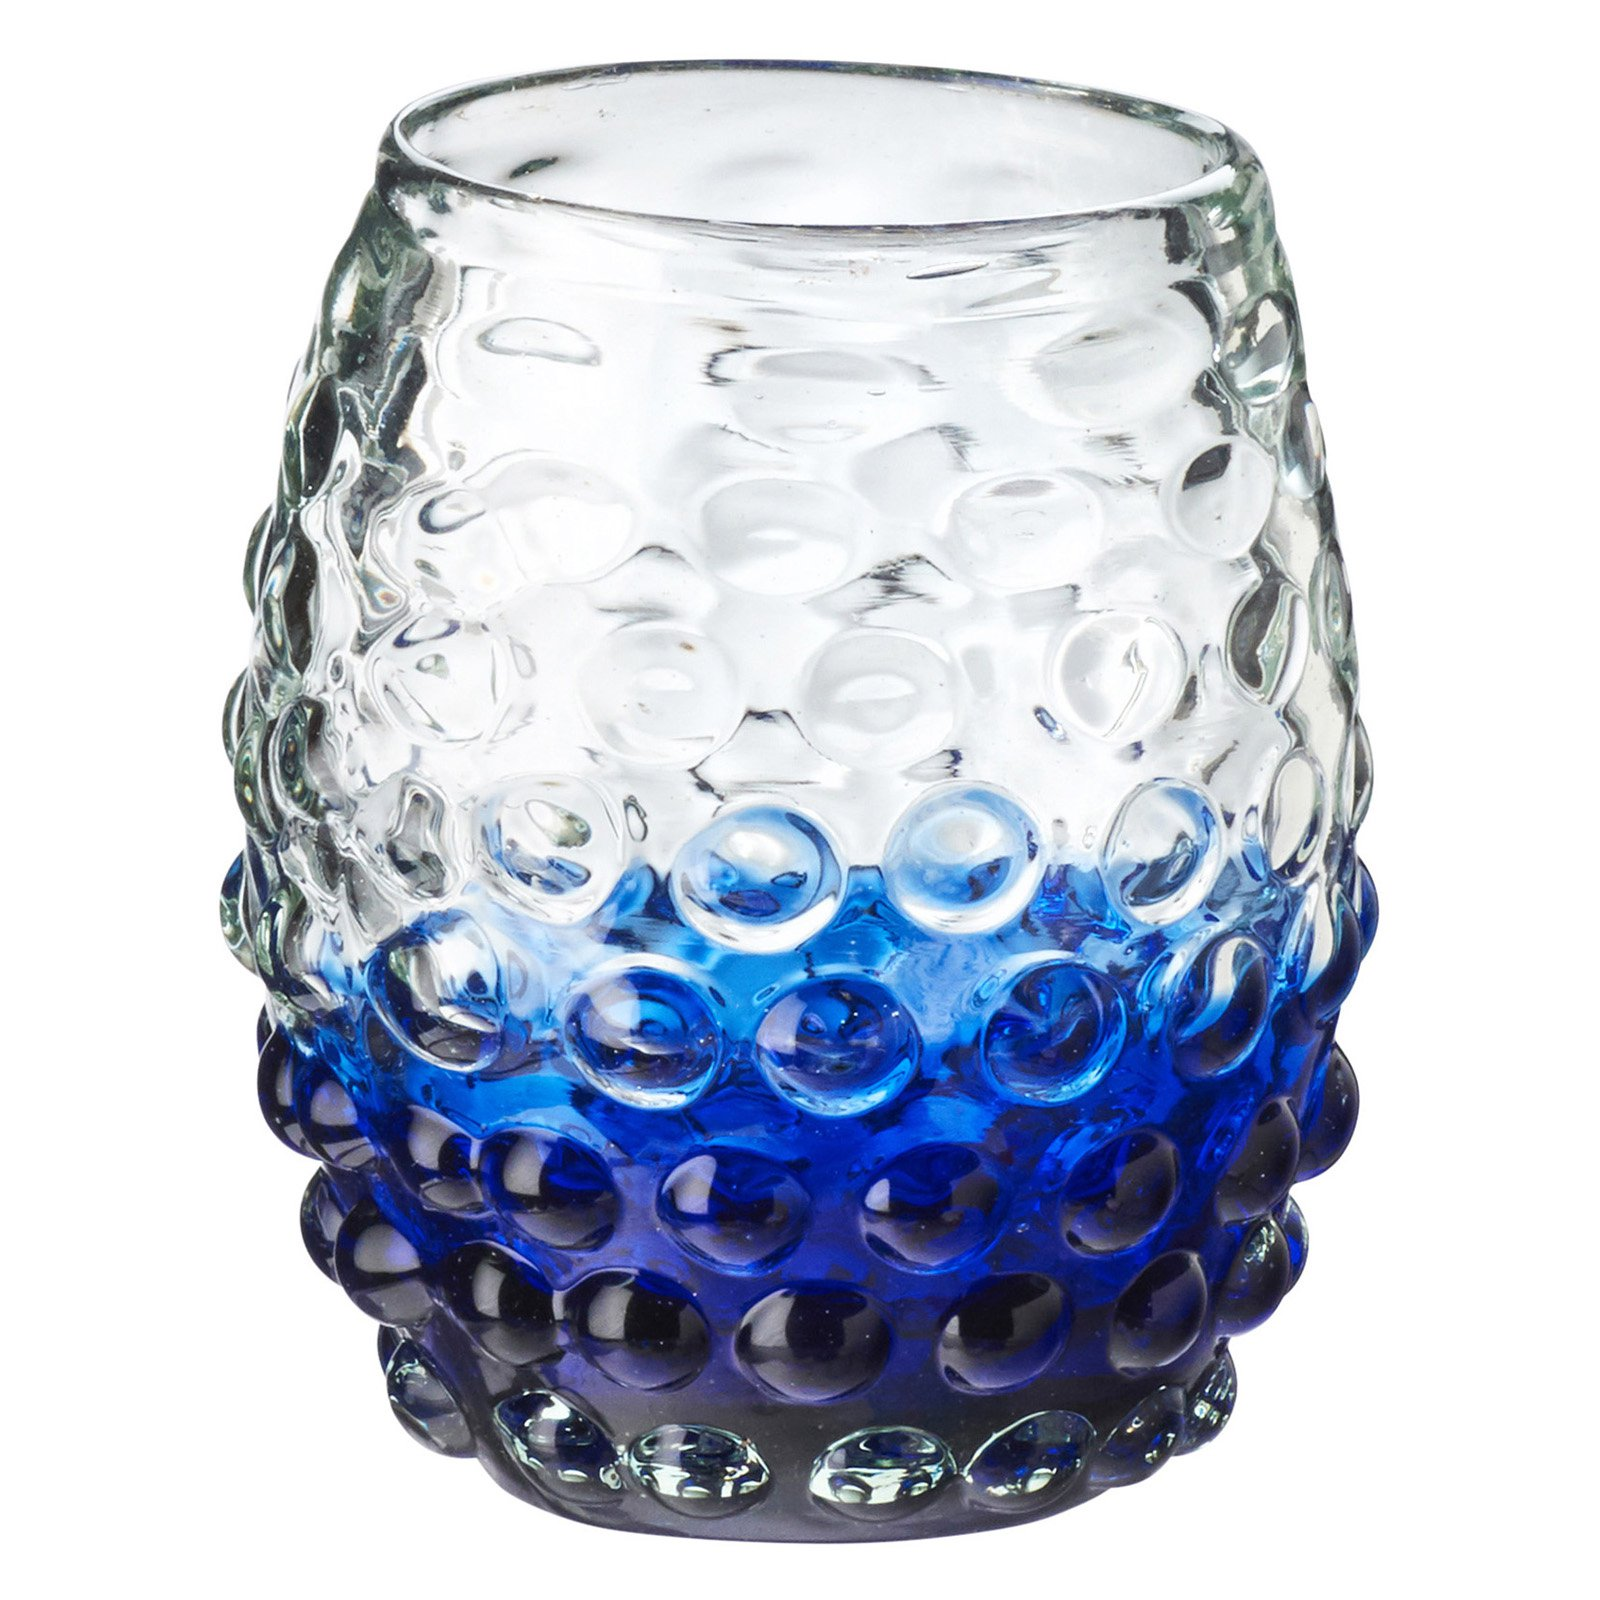 Catalina Ombre Hobnail Double Old Fashioned Glass, Aqua, Set of 4, 12 oz